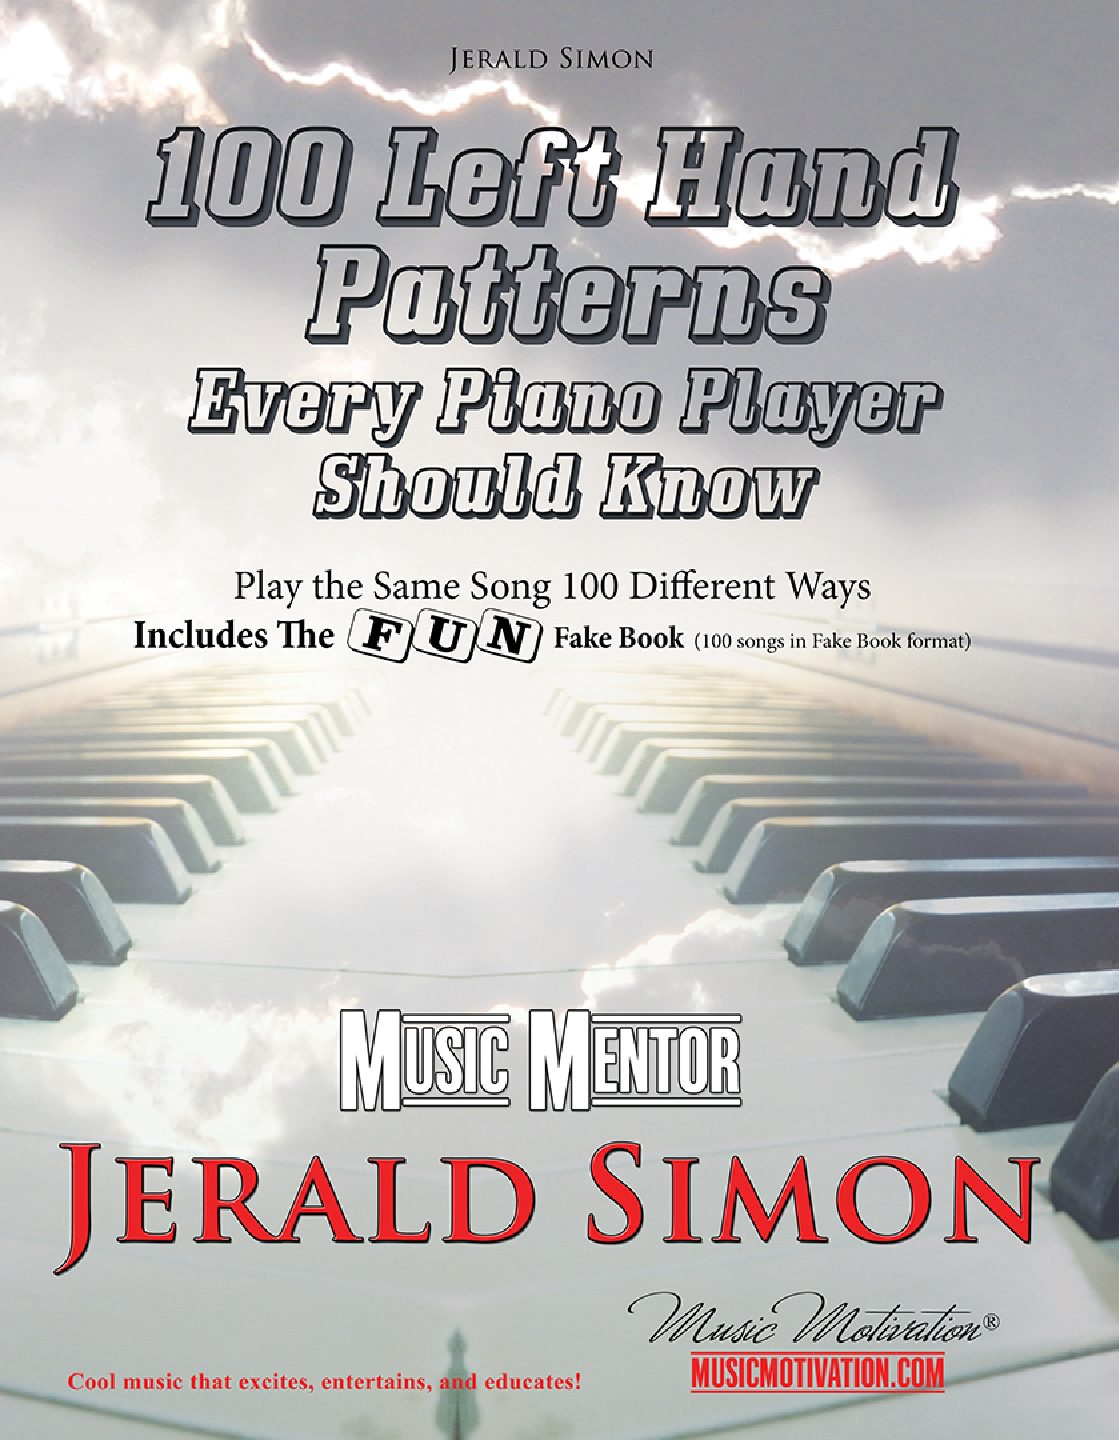 100 Left Hand Patterns Every Piano Player Should Know - PDF download  (single use license)